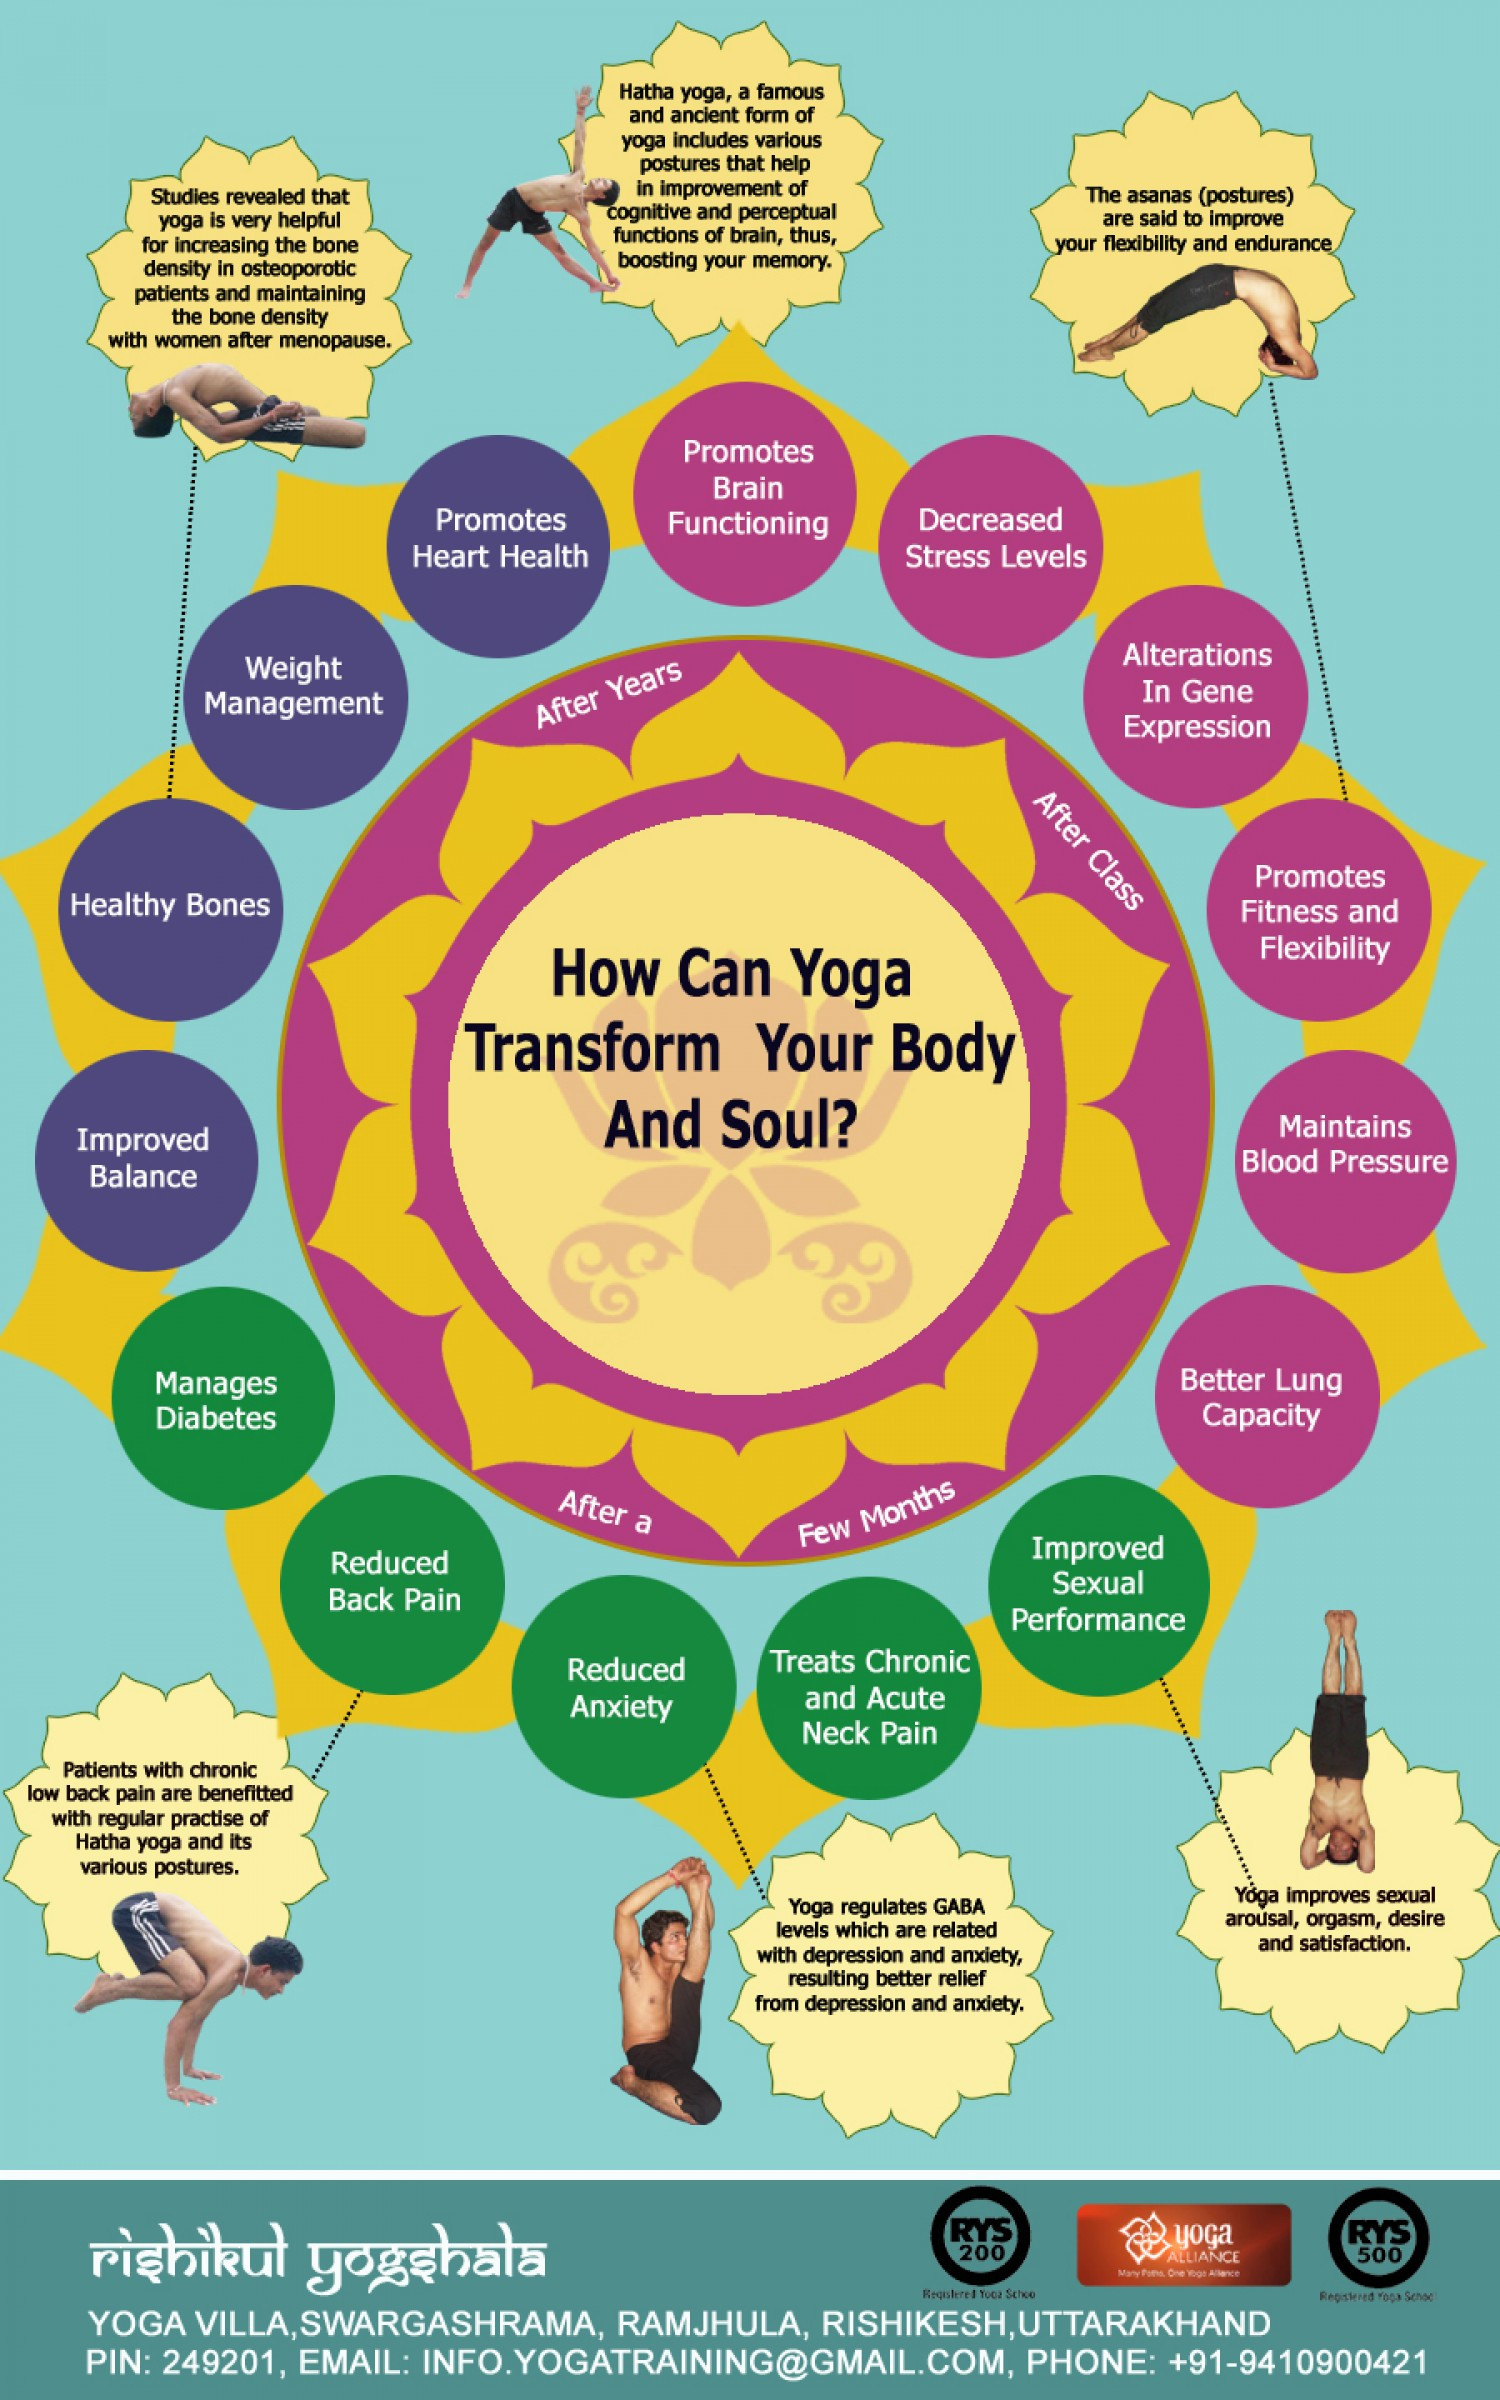 How Can Yoga Transform Your Body Soul Infographic